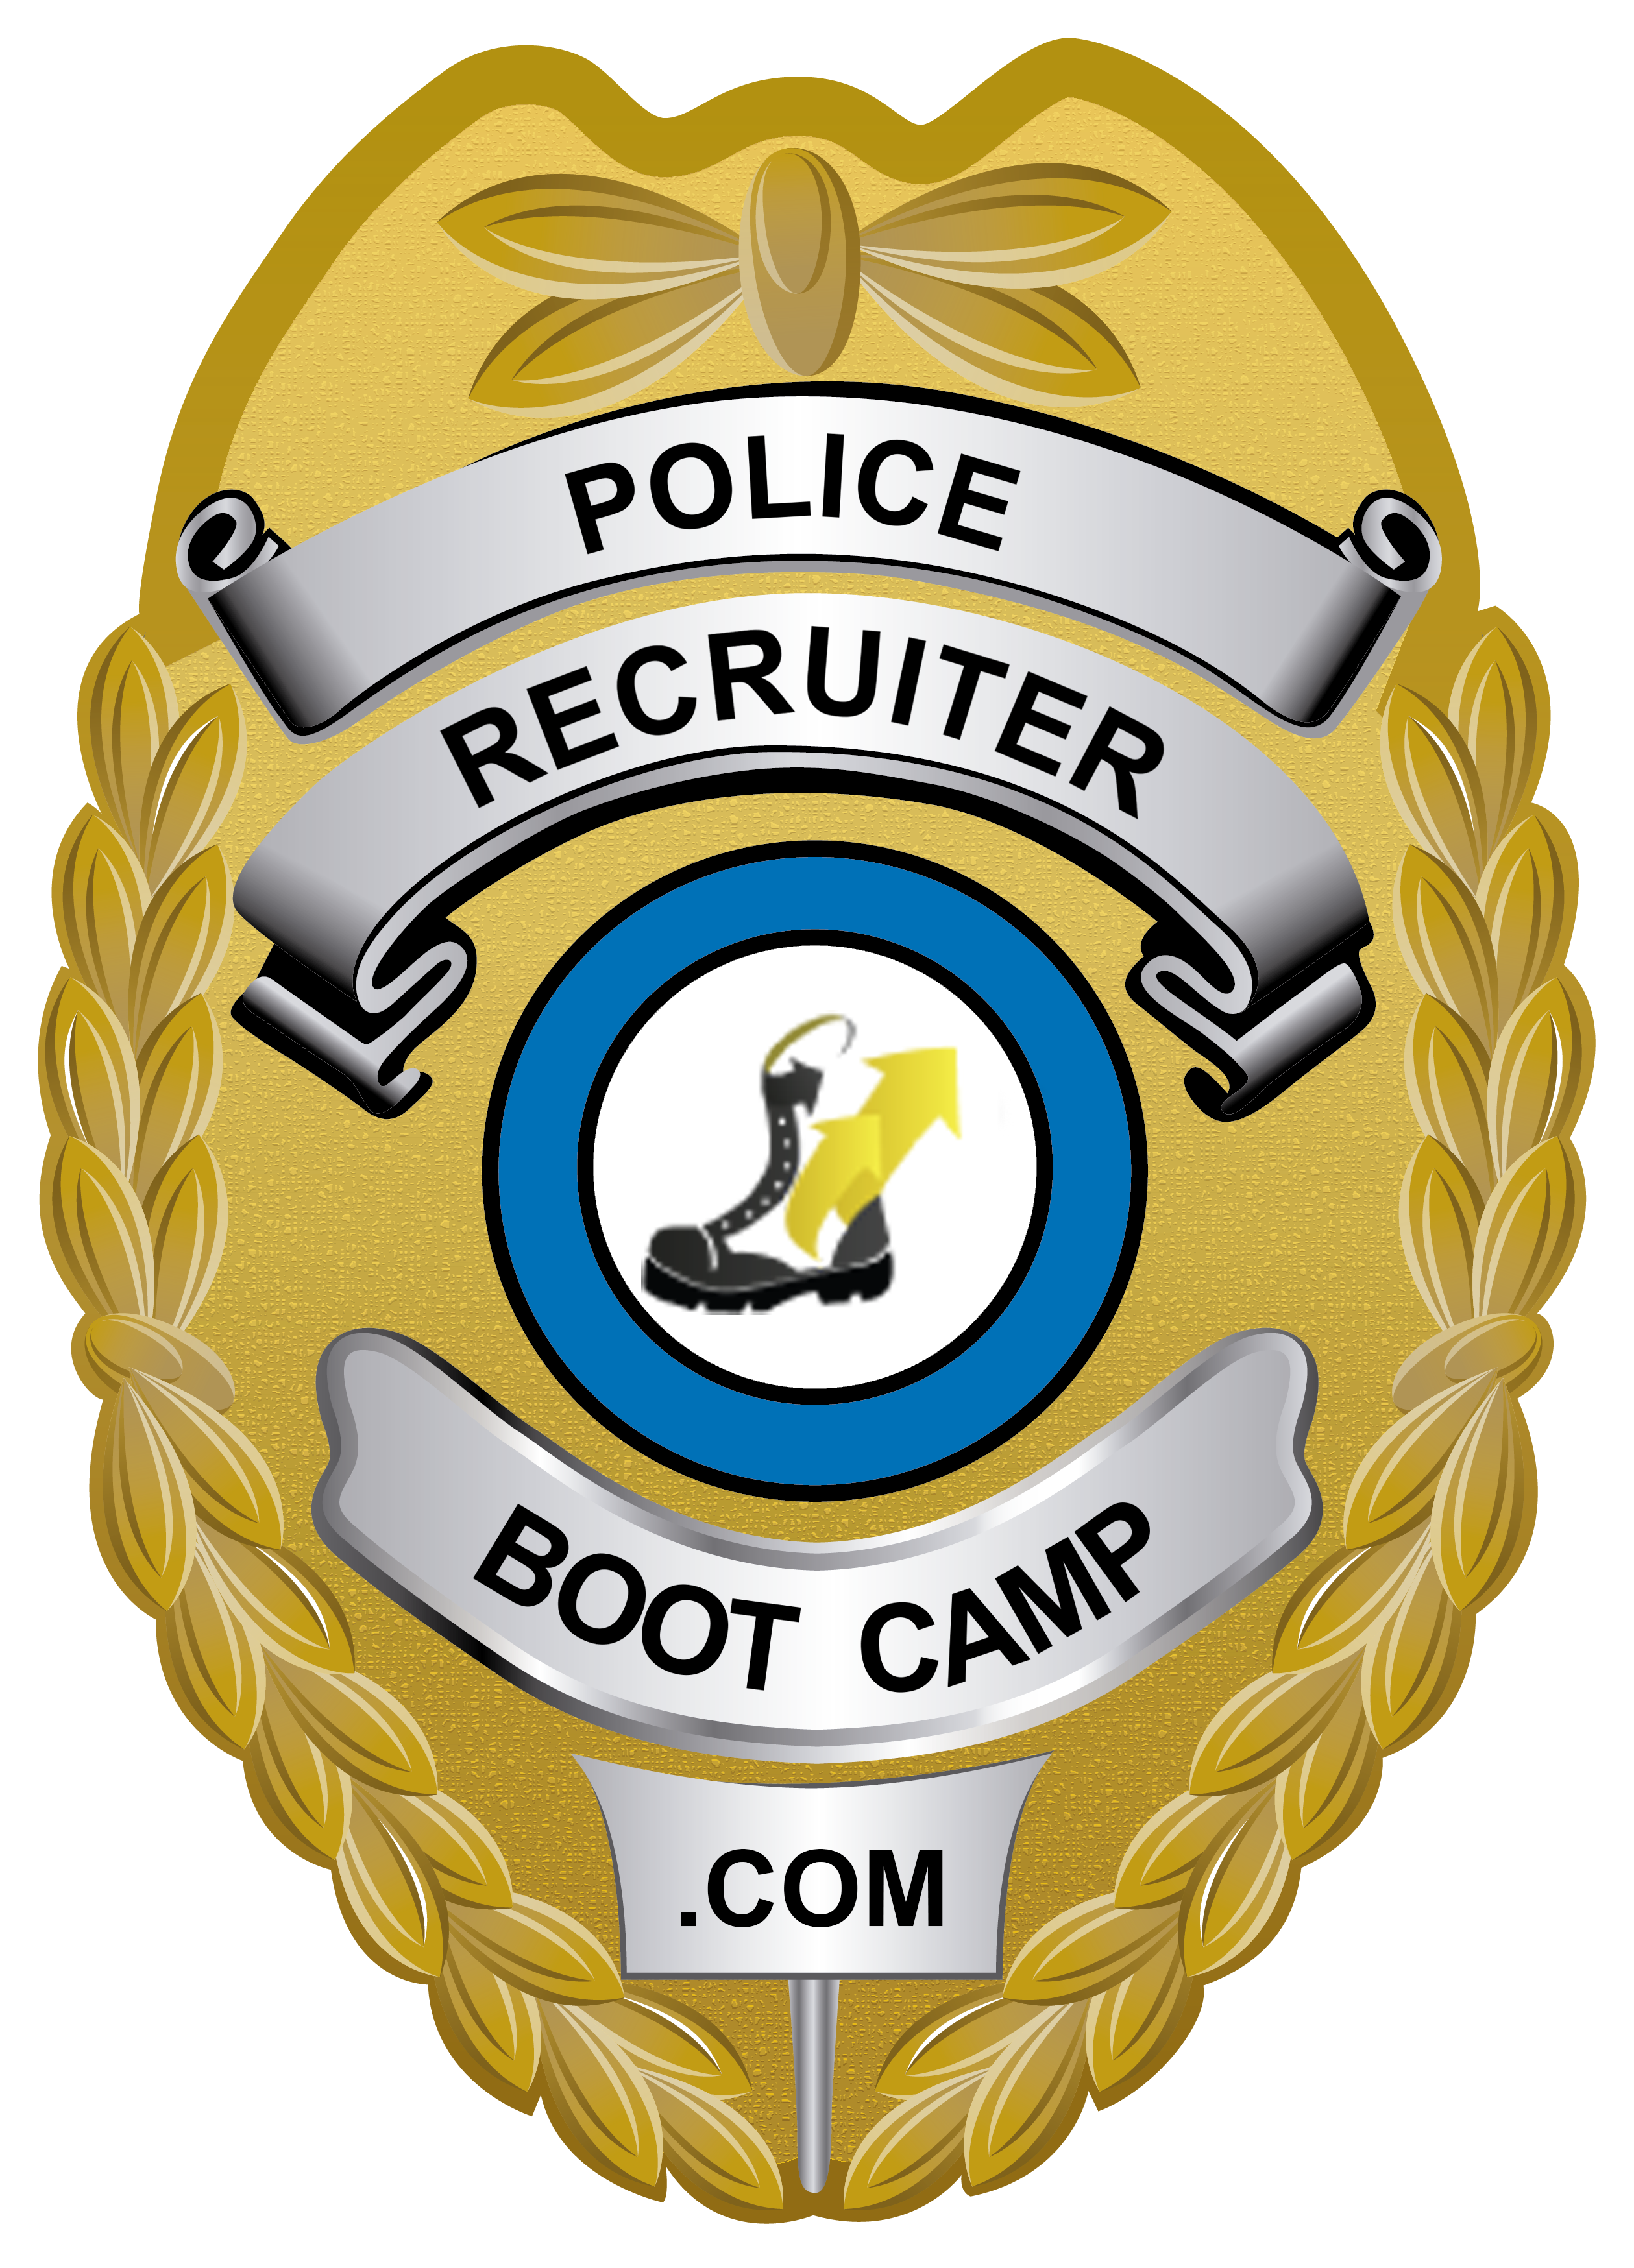 Police Recruiter Boot Camp in Greenwood, Indiana